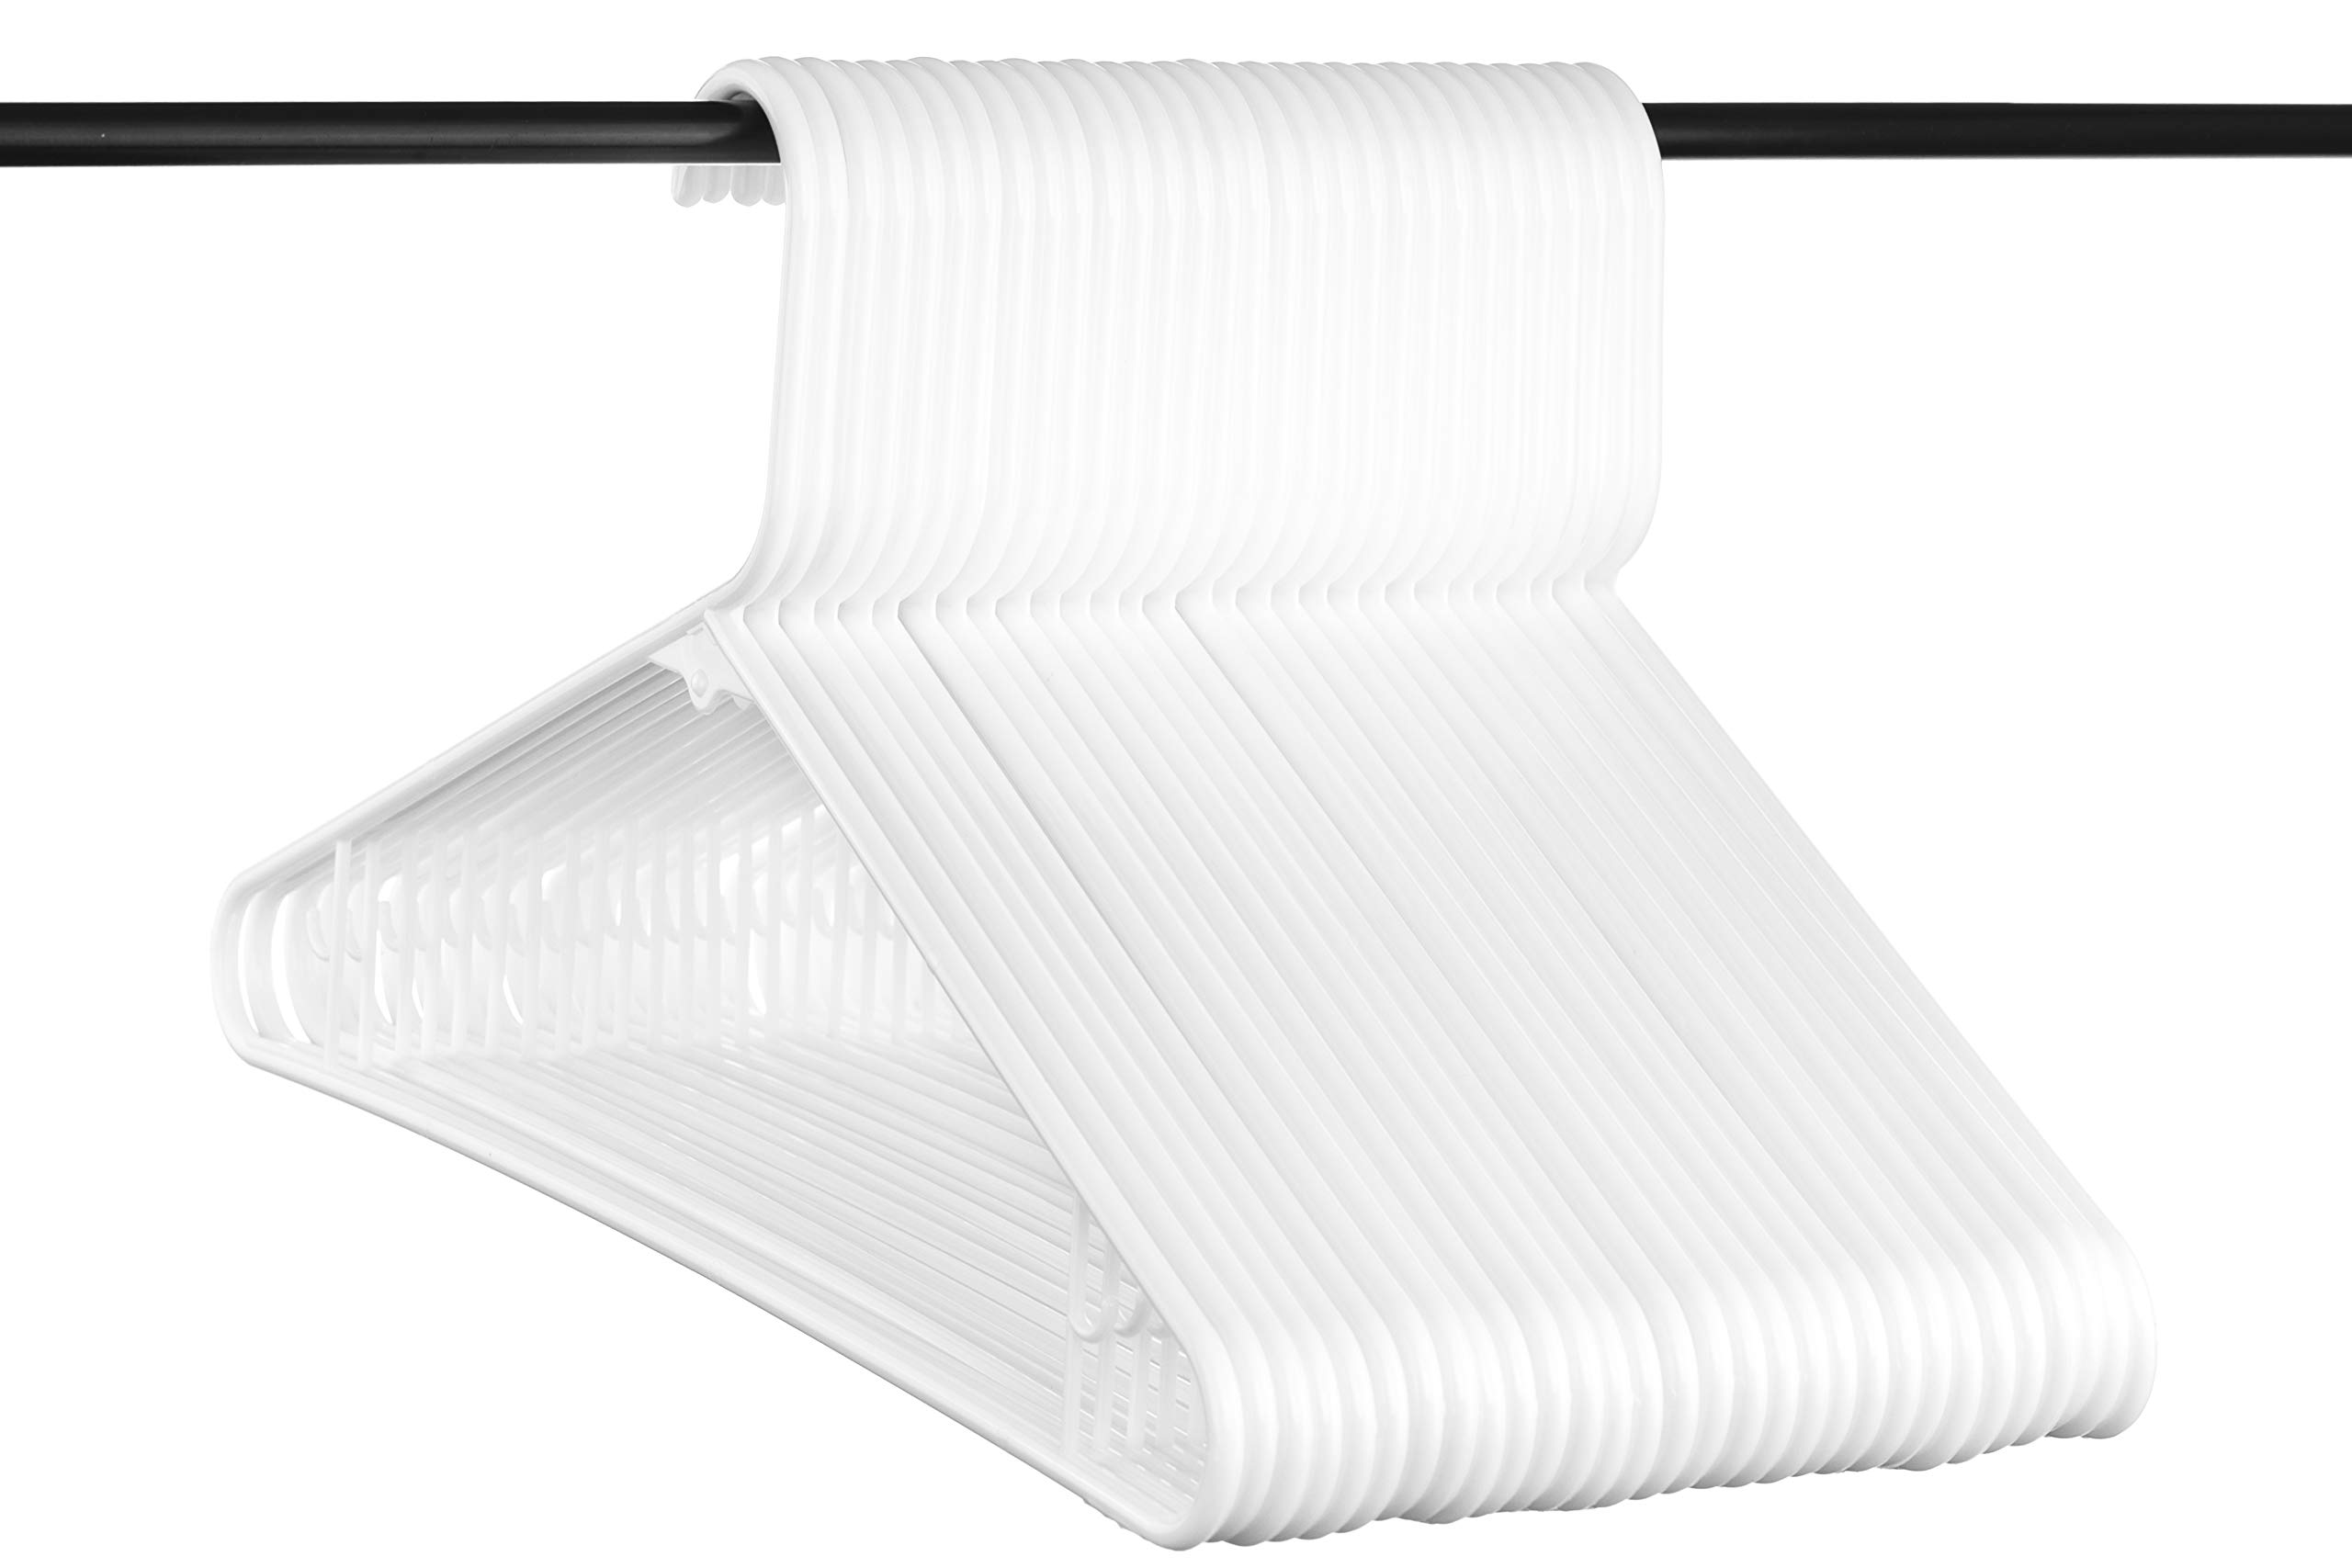 Neaties American Made White Plastic Hangers with Bar Hooks, Plastic Clothes Hangers Ideal for Everyday Use, Clothing Standard Hangers, 30pk by Neaties